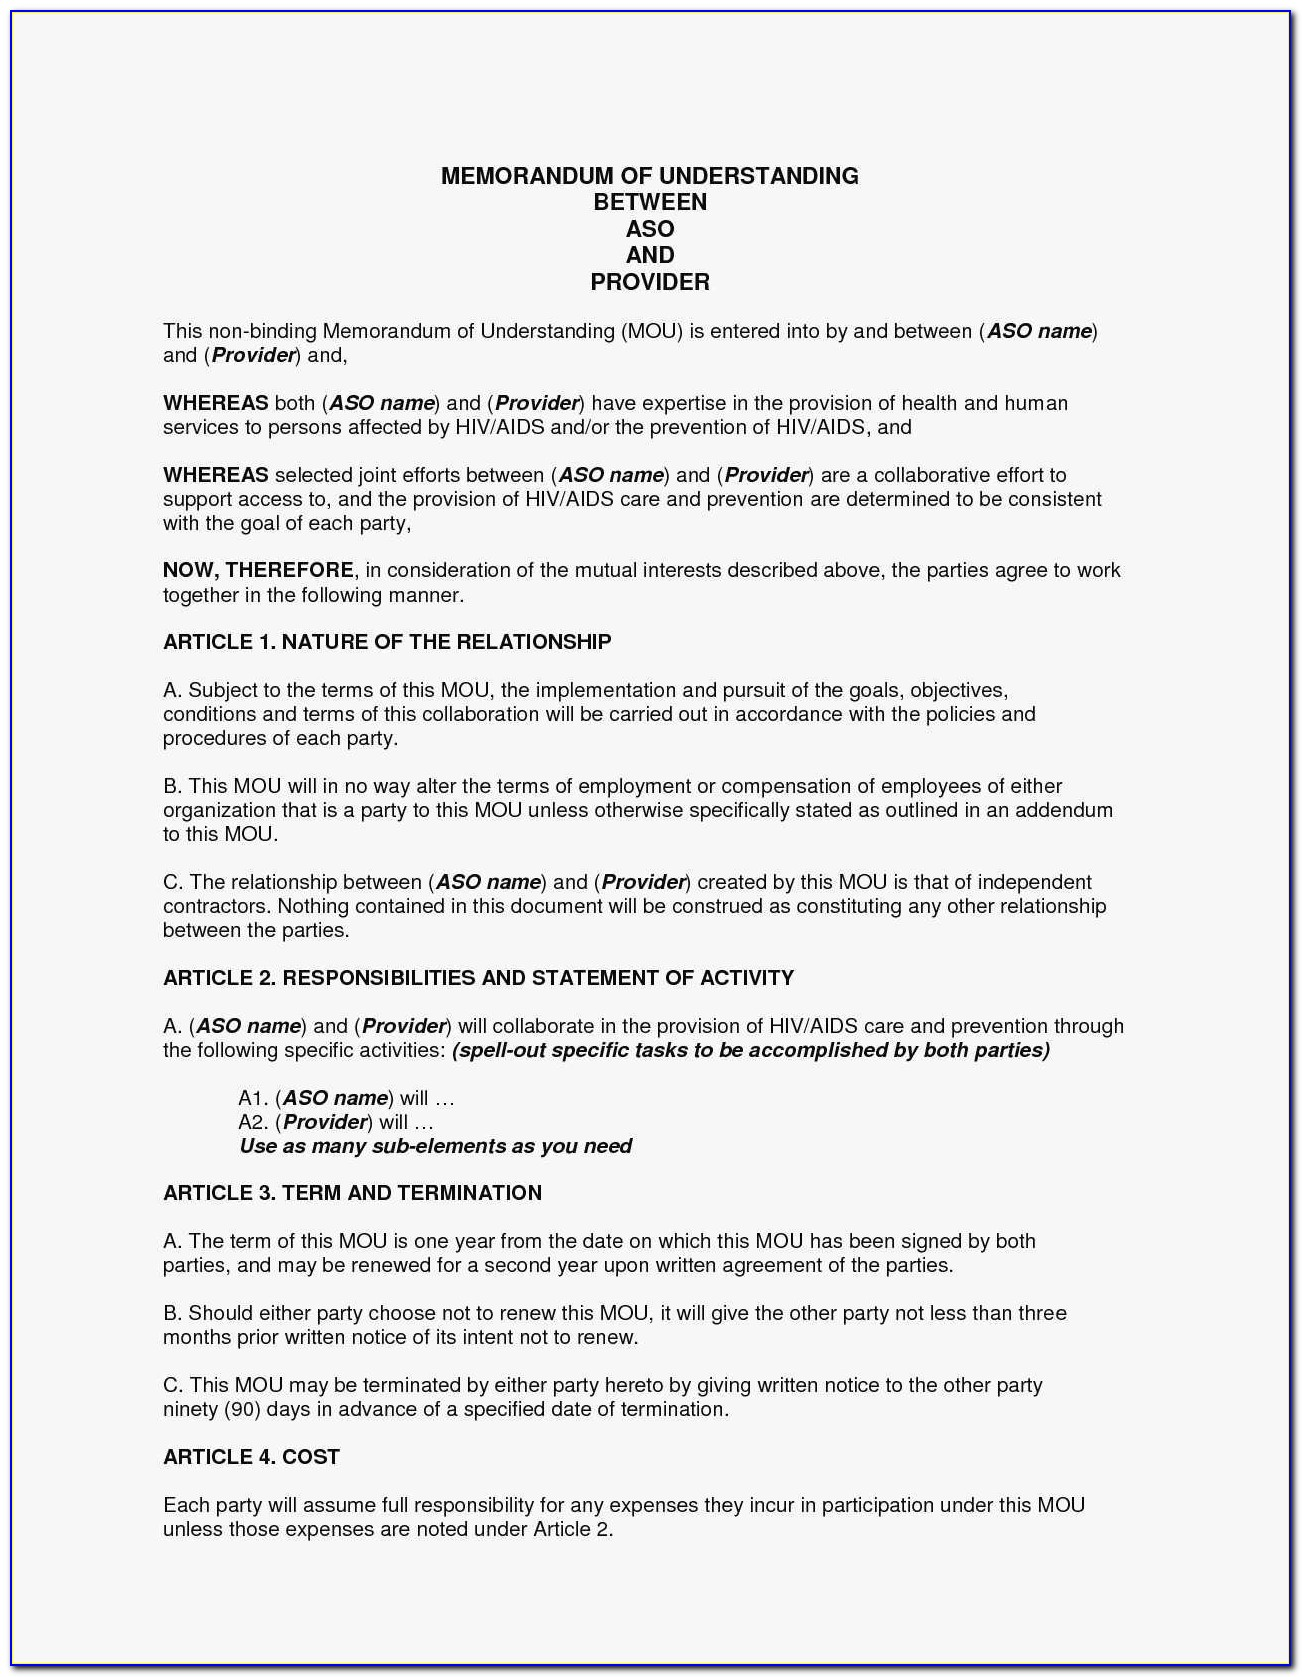 Free Commercial Lease Agreement Template Download Uk Inspirational Sample Memorandum Of Understanding Business Partnership Doc By